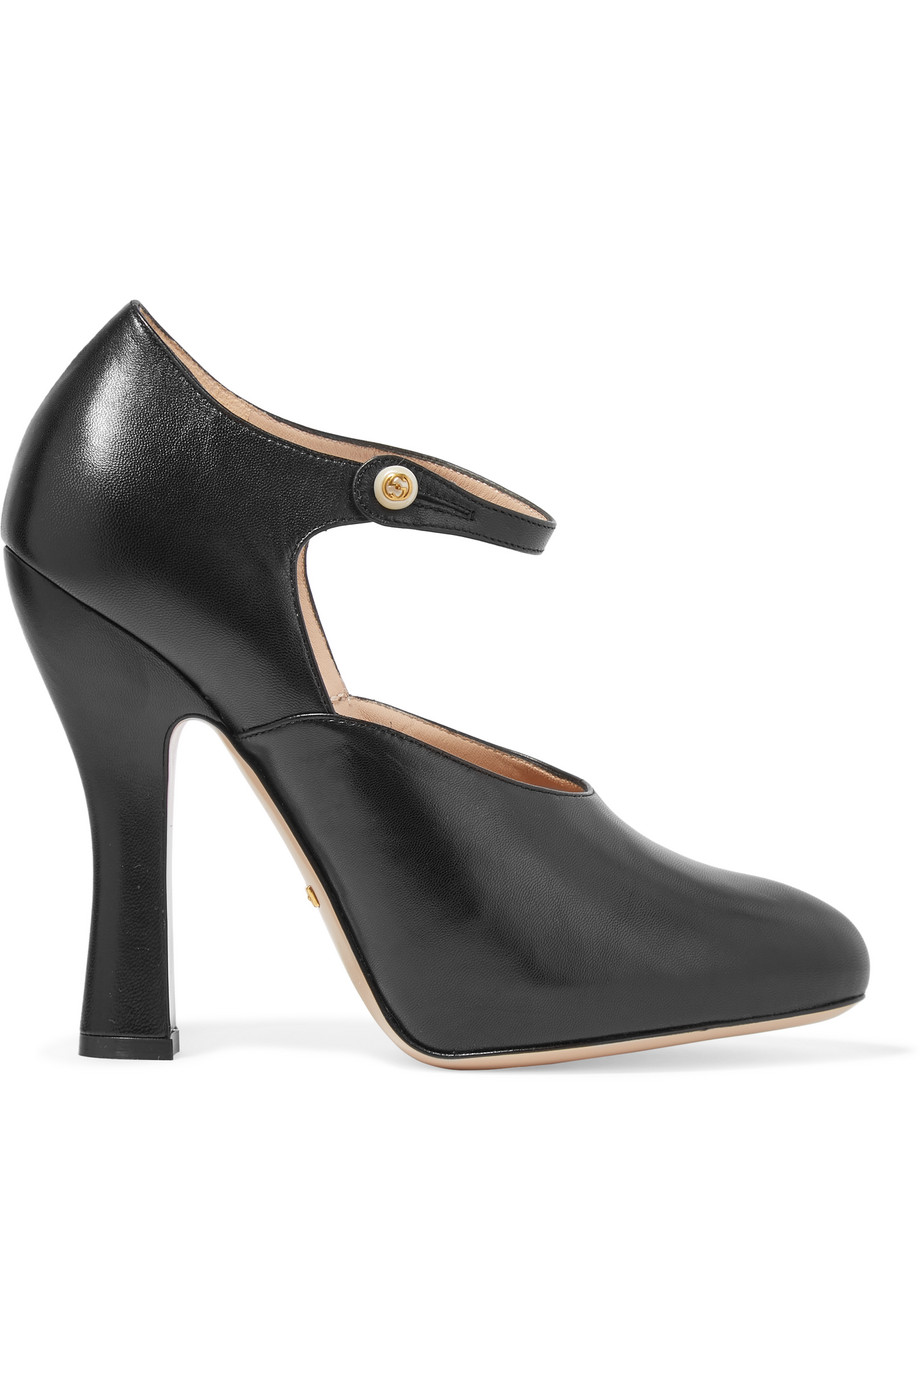 Step Out In Style With Salma's Gucci Pumps